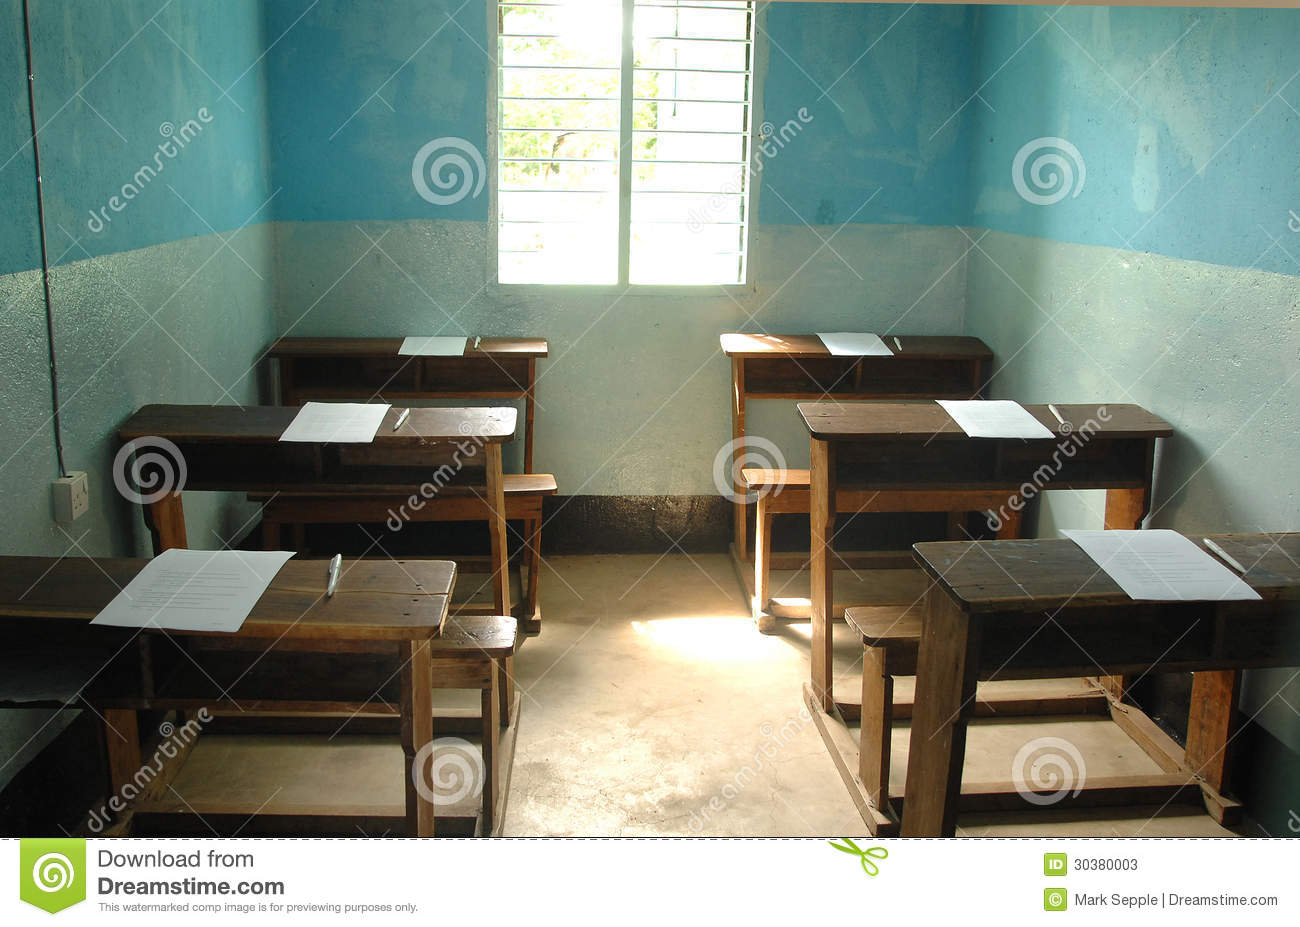 Elementary Classroom Clipart ~ African classroom editorial stock photo image